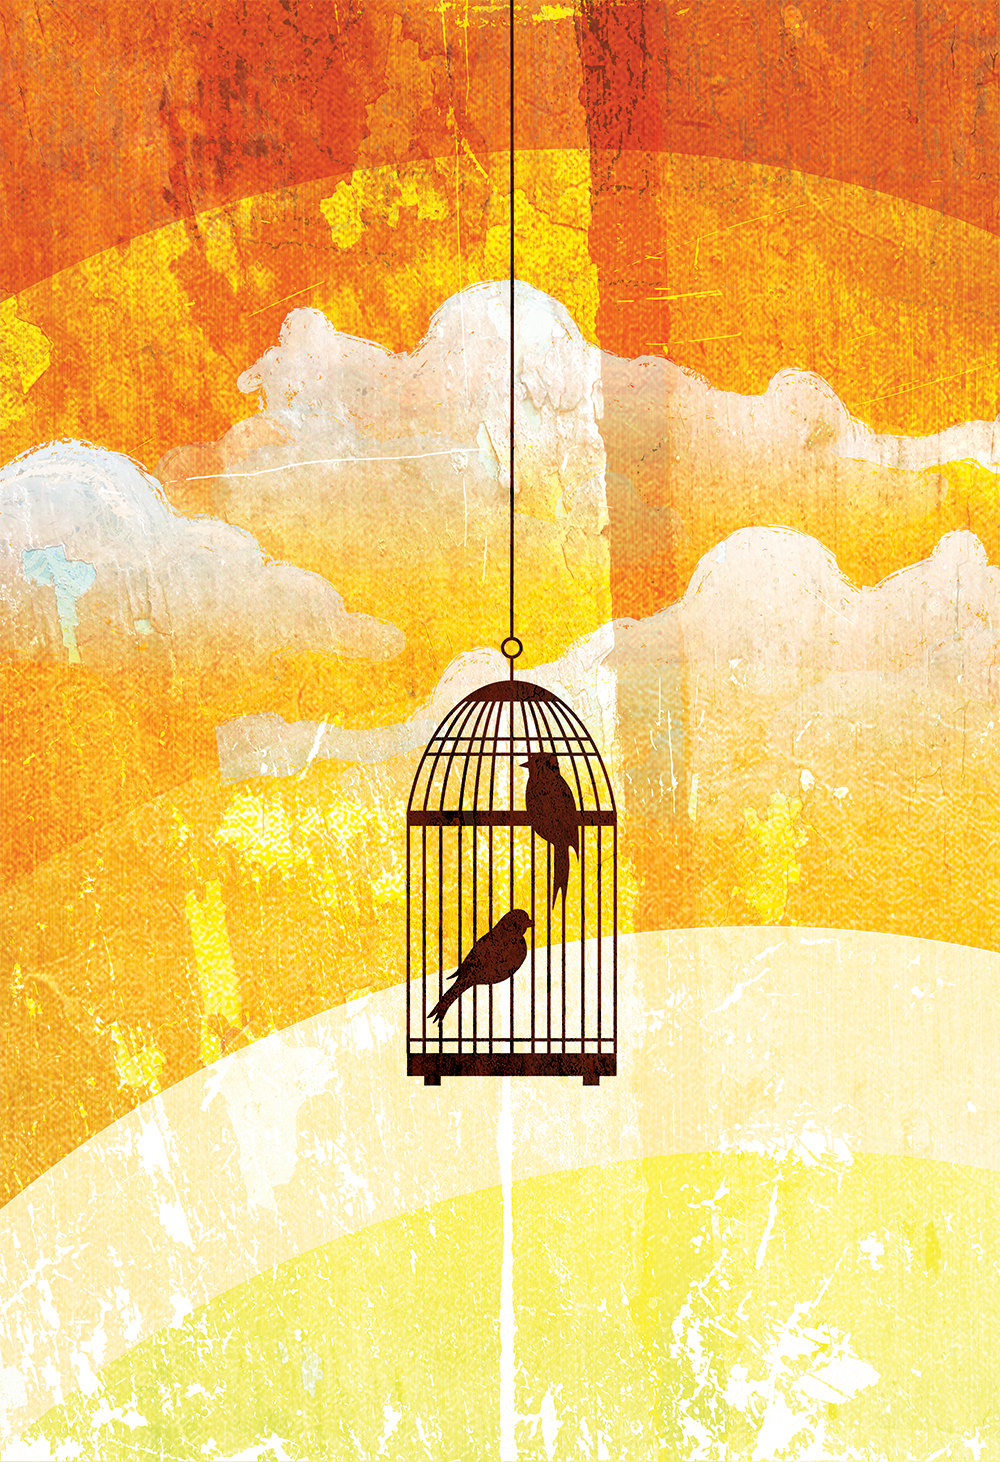 Bird Cage Abstract Wall Decor Illustration Birdcage Art Print Giclee ...